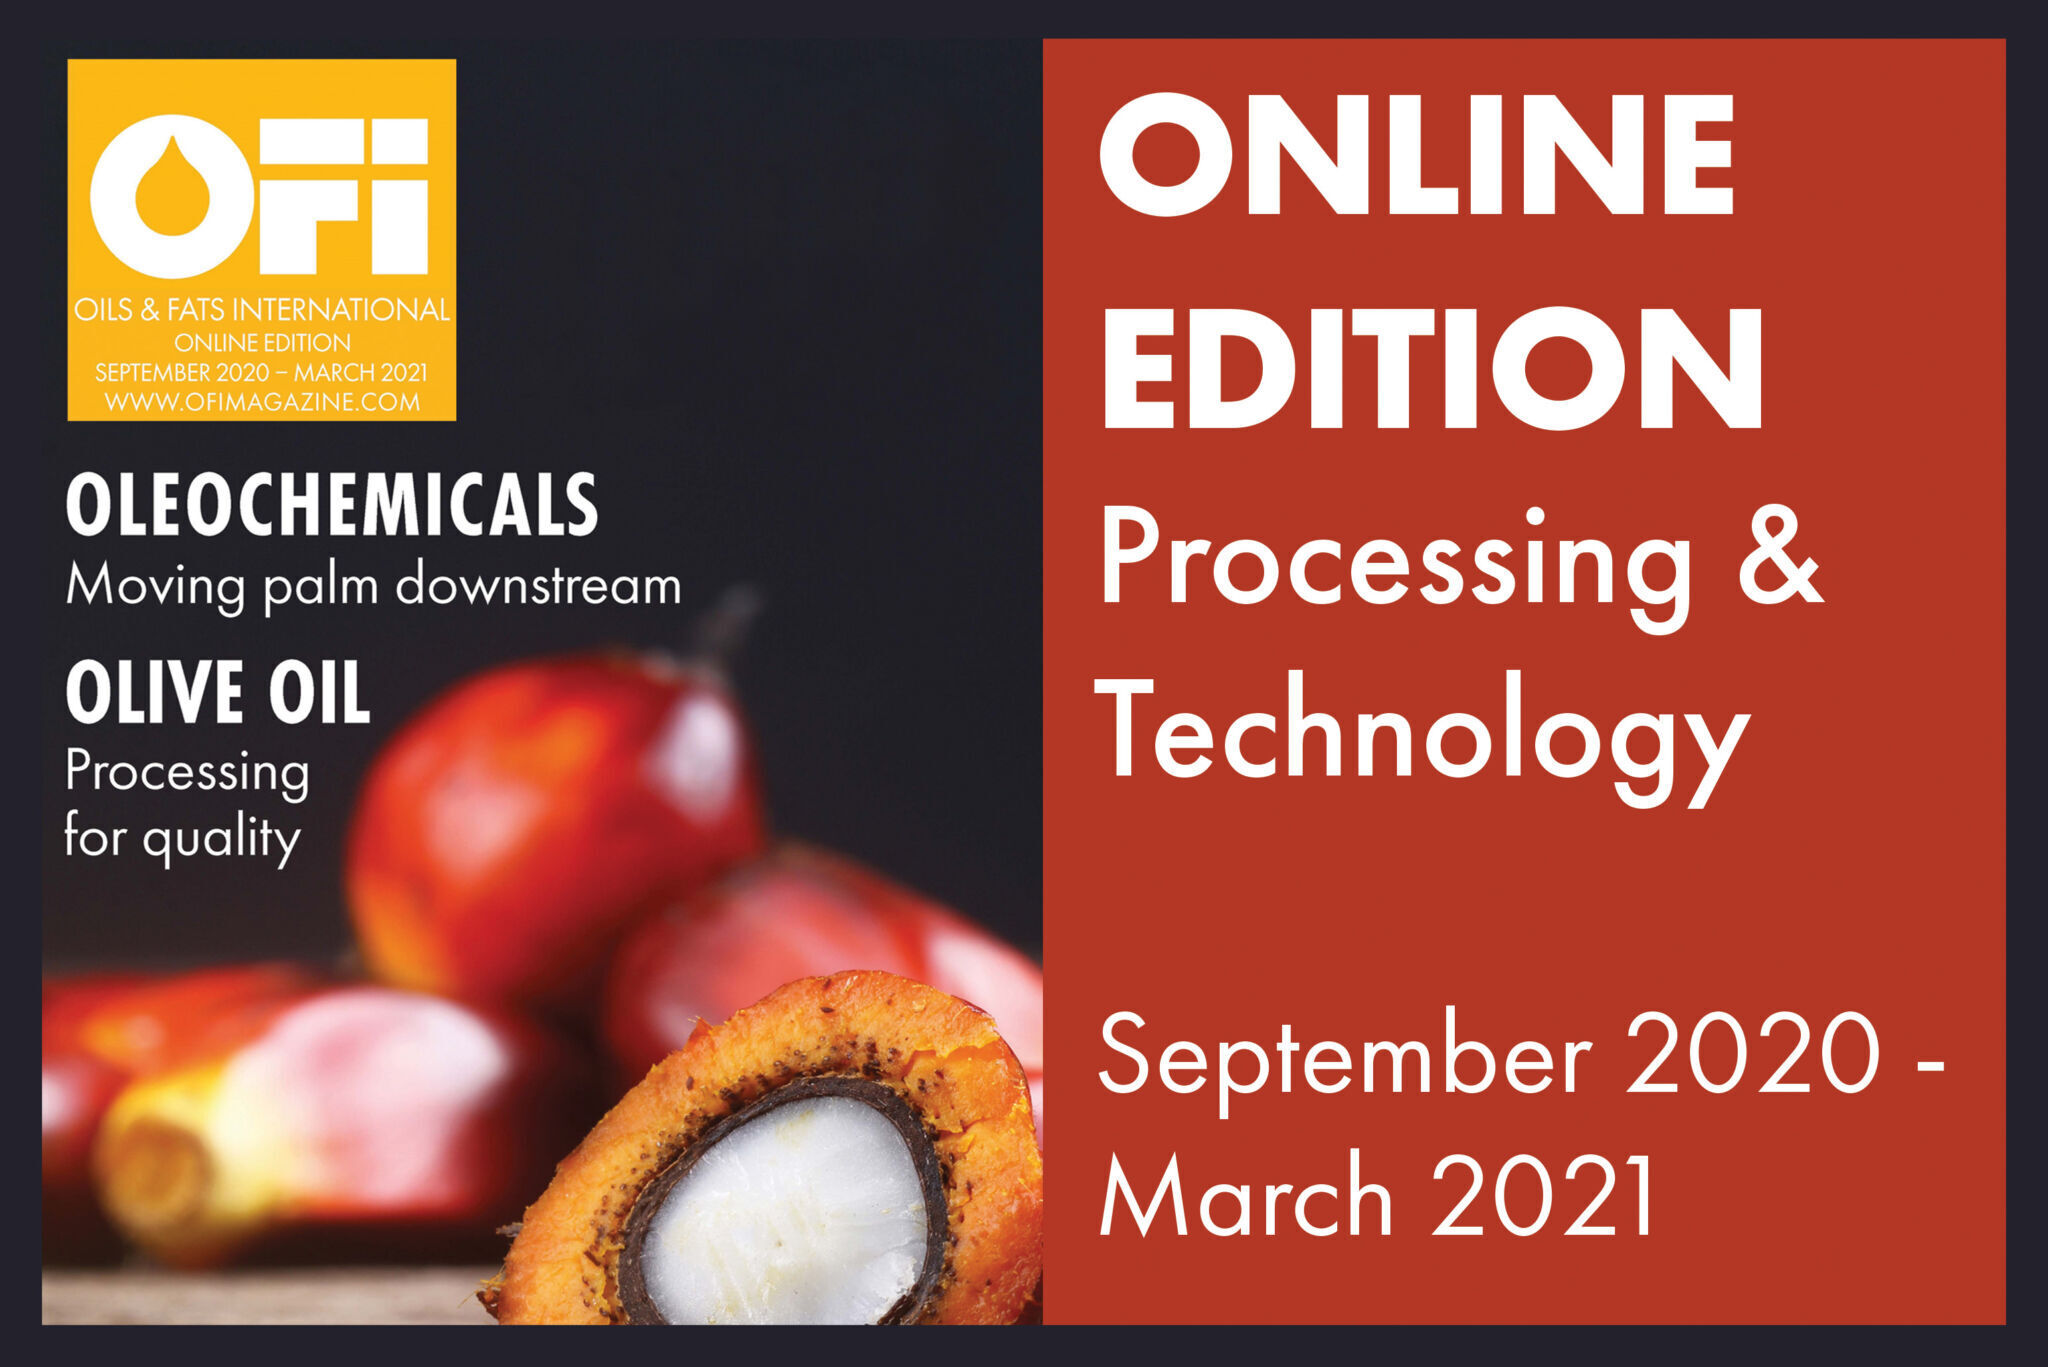 Processing & Technology Online edition